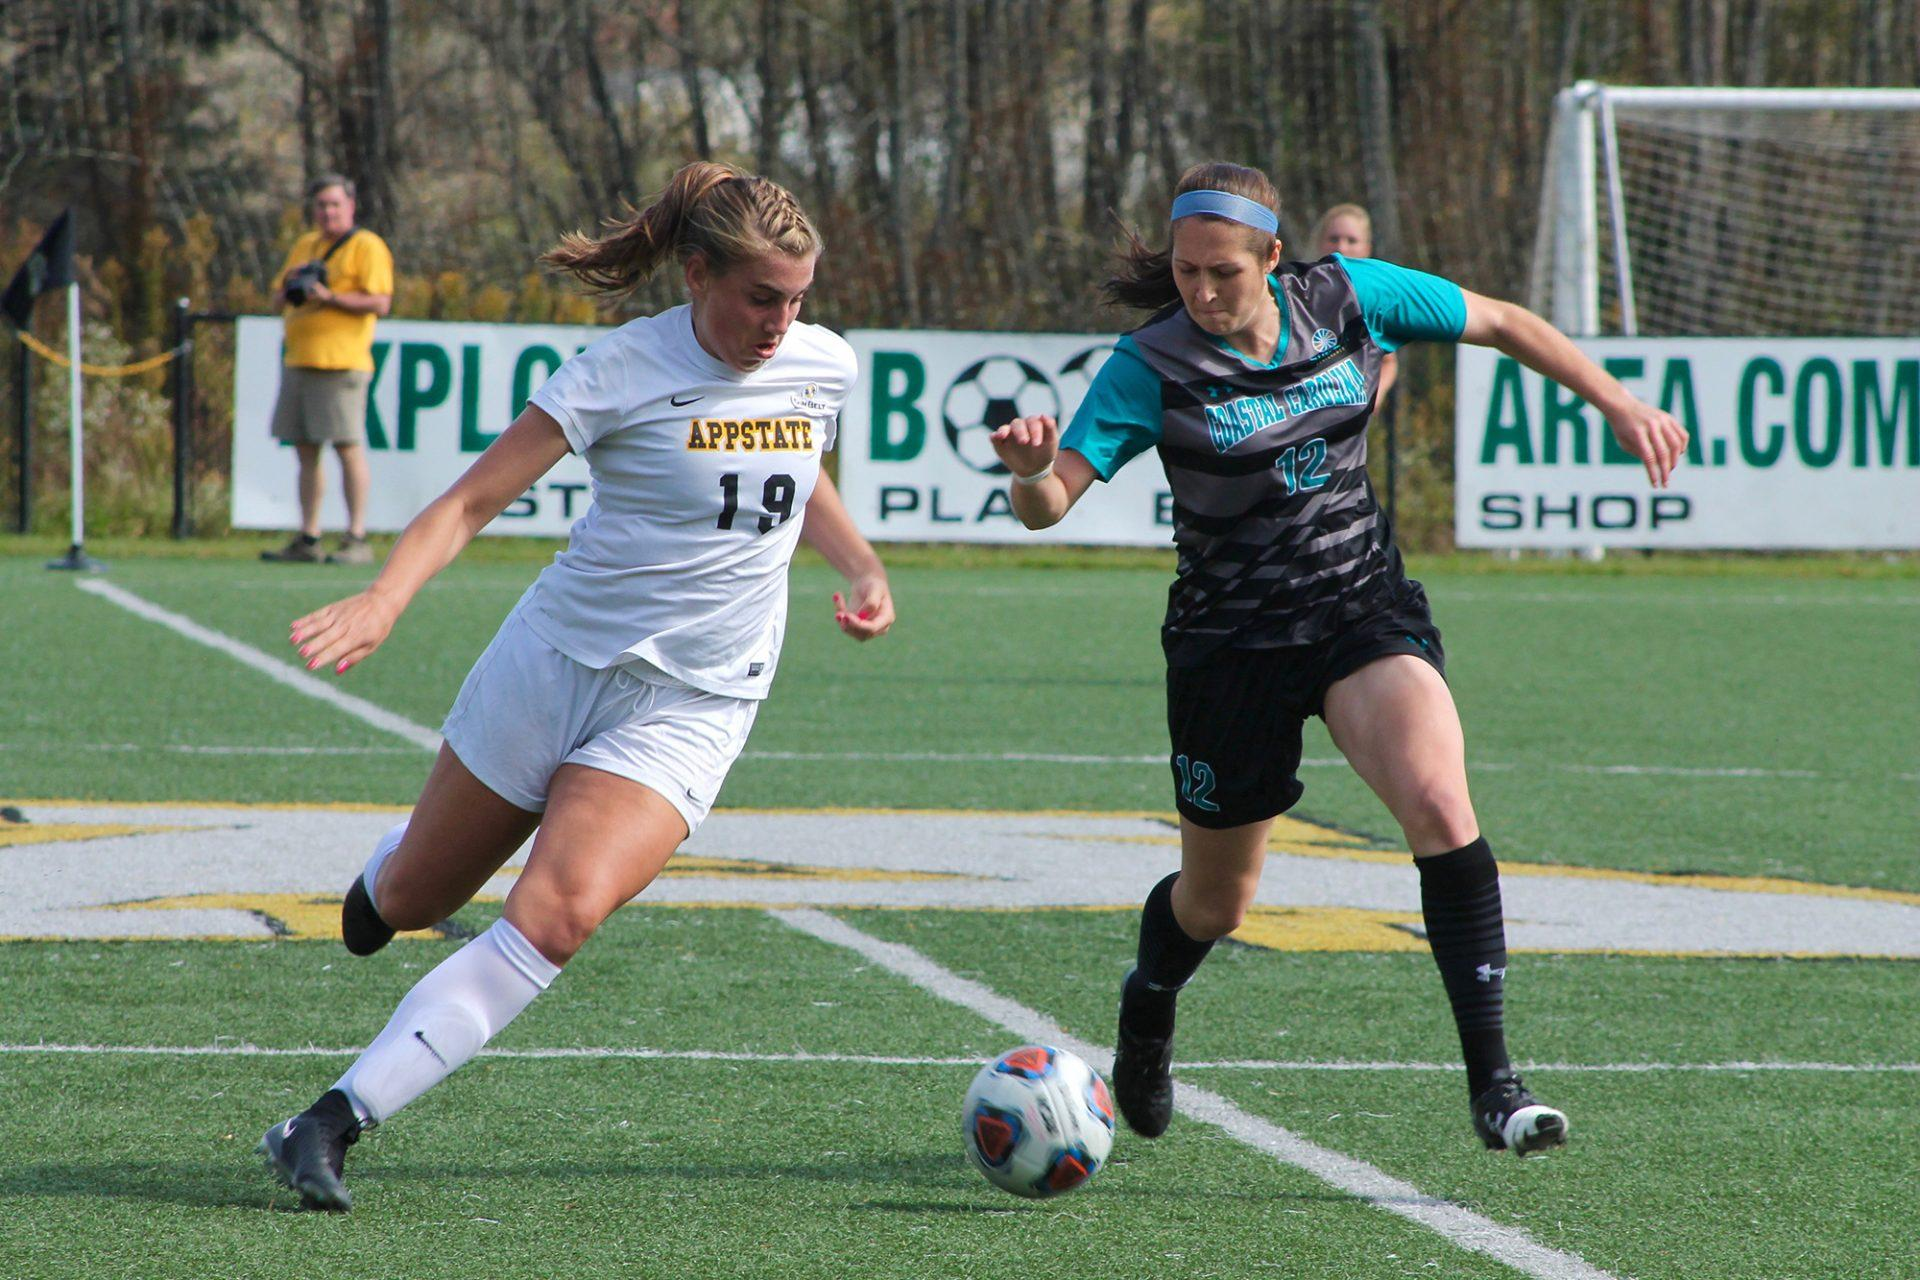 App State women's soccer hitting its stride right in time for conference tournament